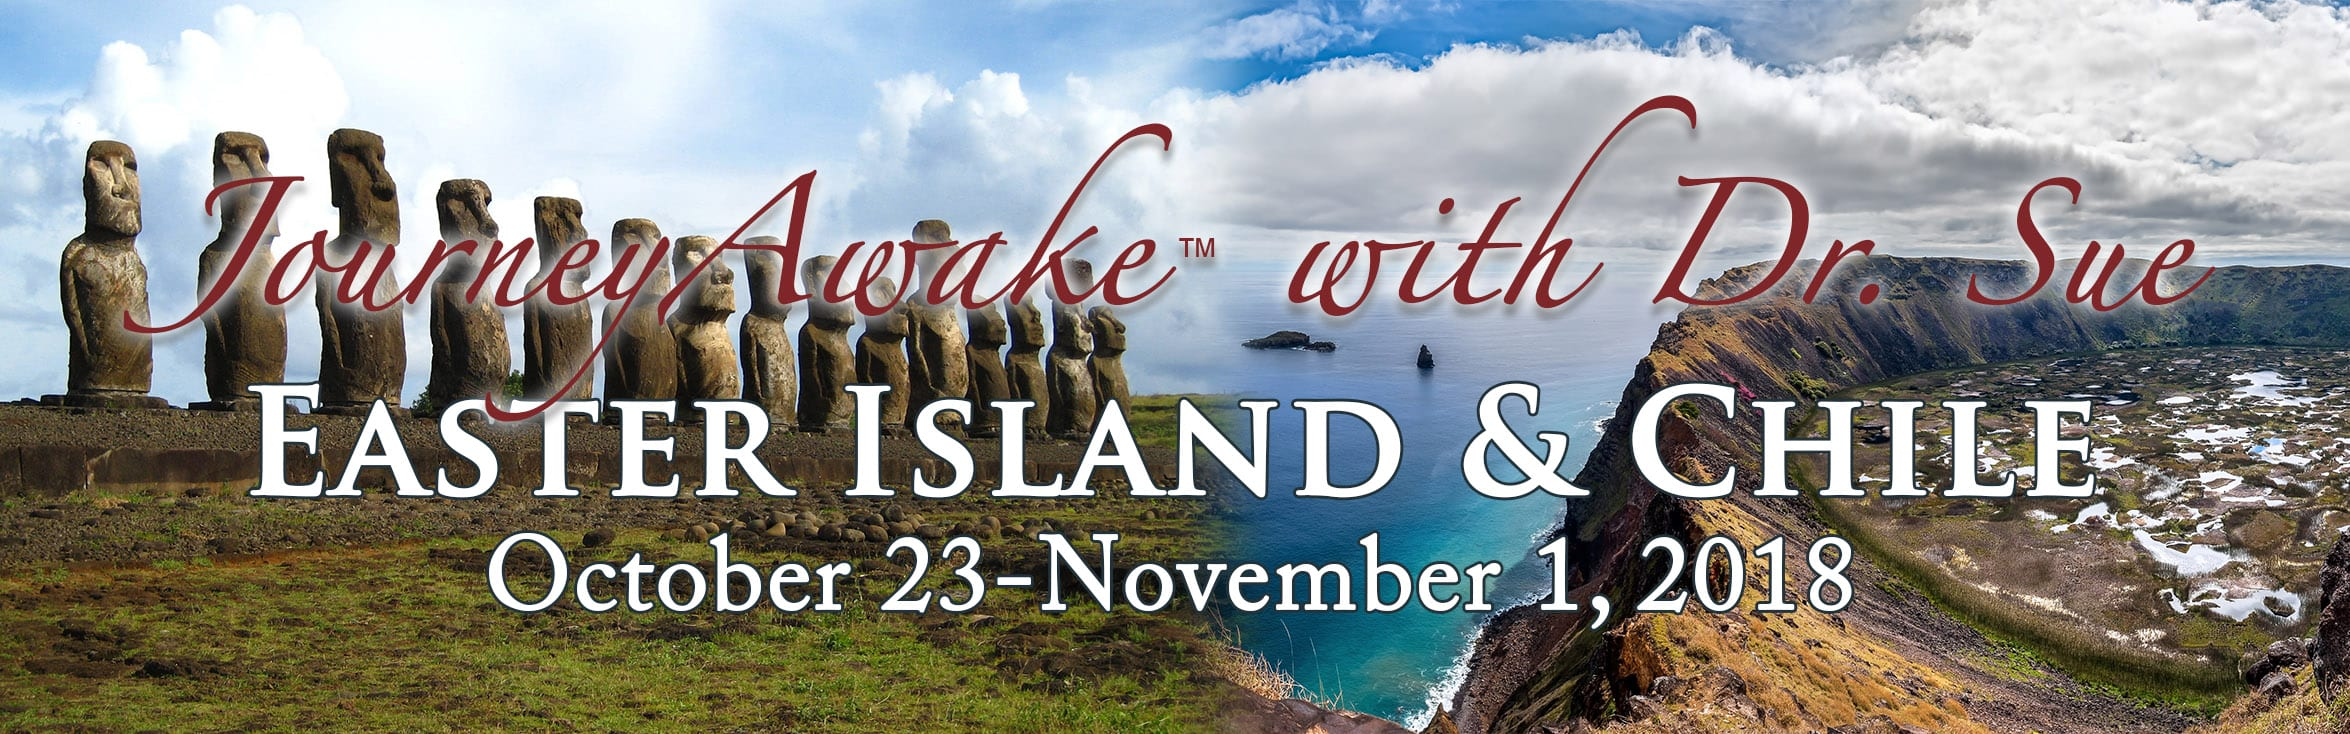 JourneyAwake to Easter Island and Chile